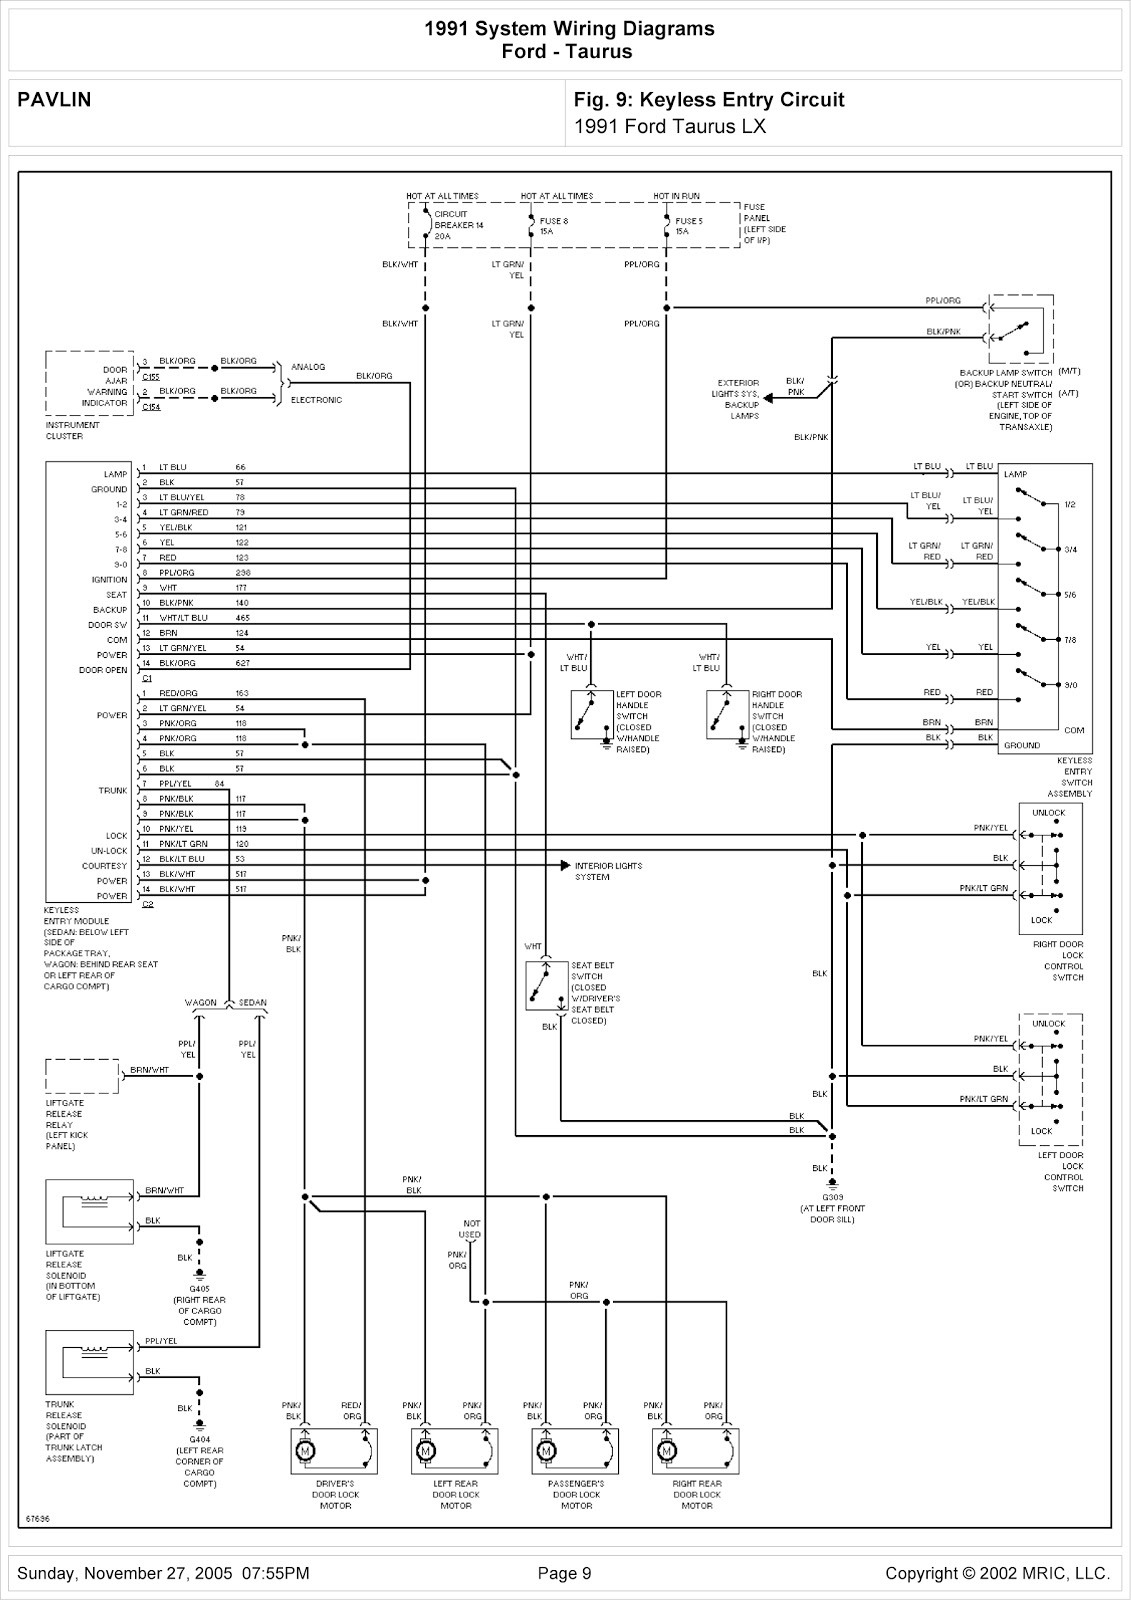 May 2011 Schematic Wiring Diagrams Solutions 1994 Ford Taurus Starting Charging 1991 Lx System Diagram For Keyless Entry Circuit